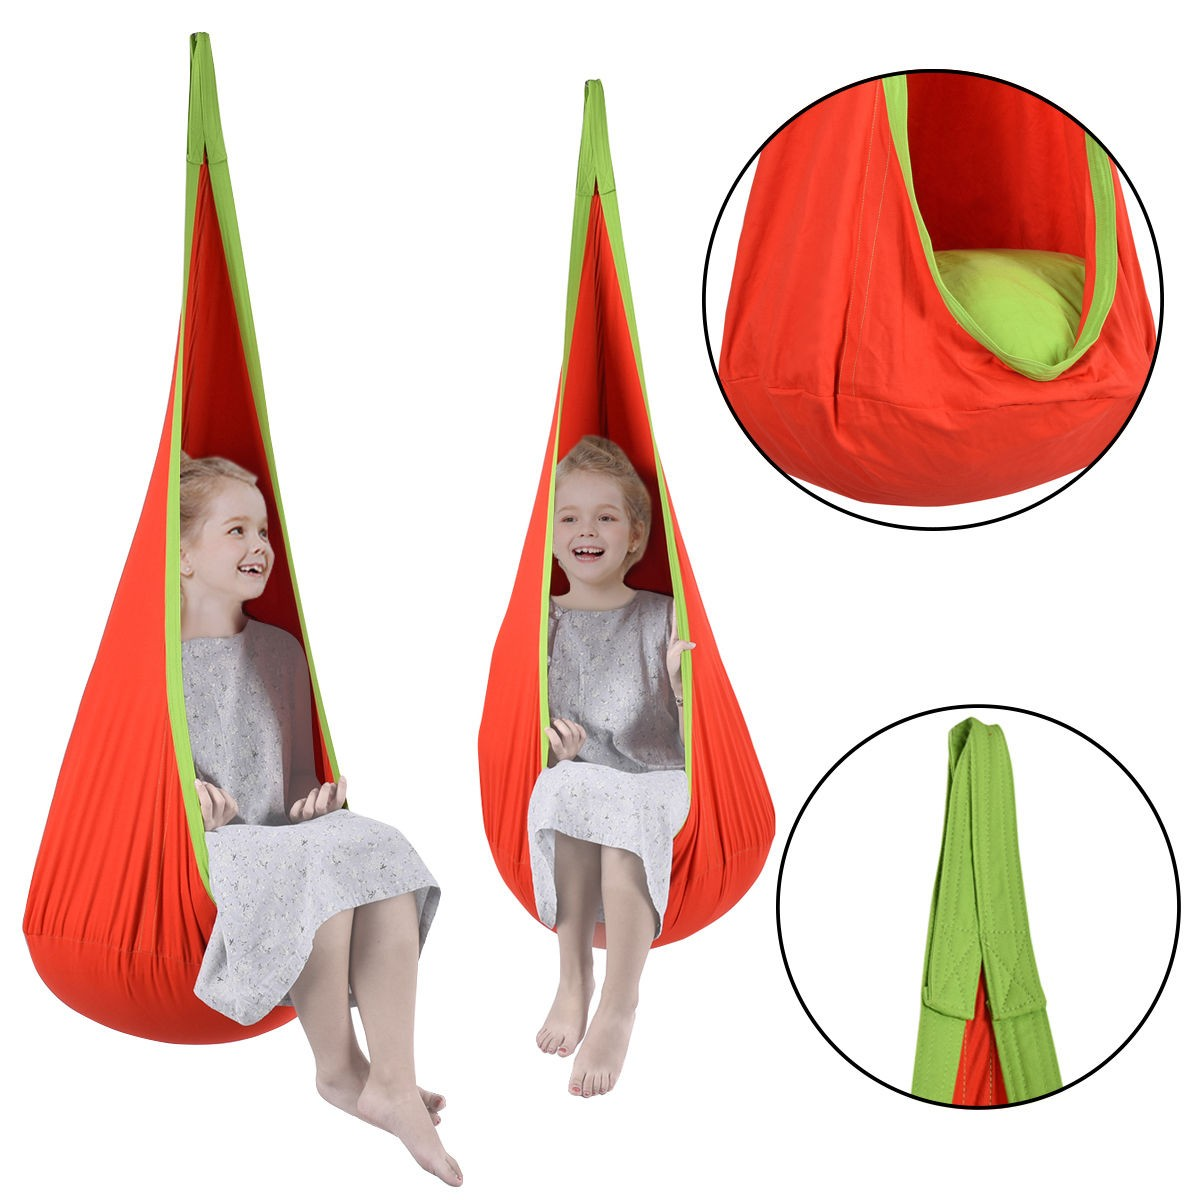 Pc Baby Hammock Inflatable Swing Indoor//Outdoor Hanging Chair with Inflatable Cushion Rose Red